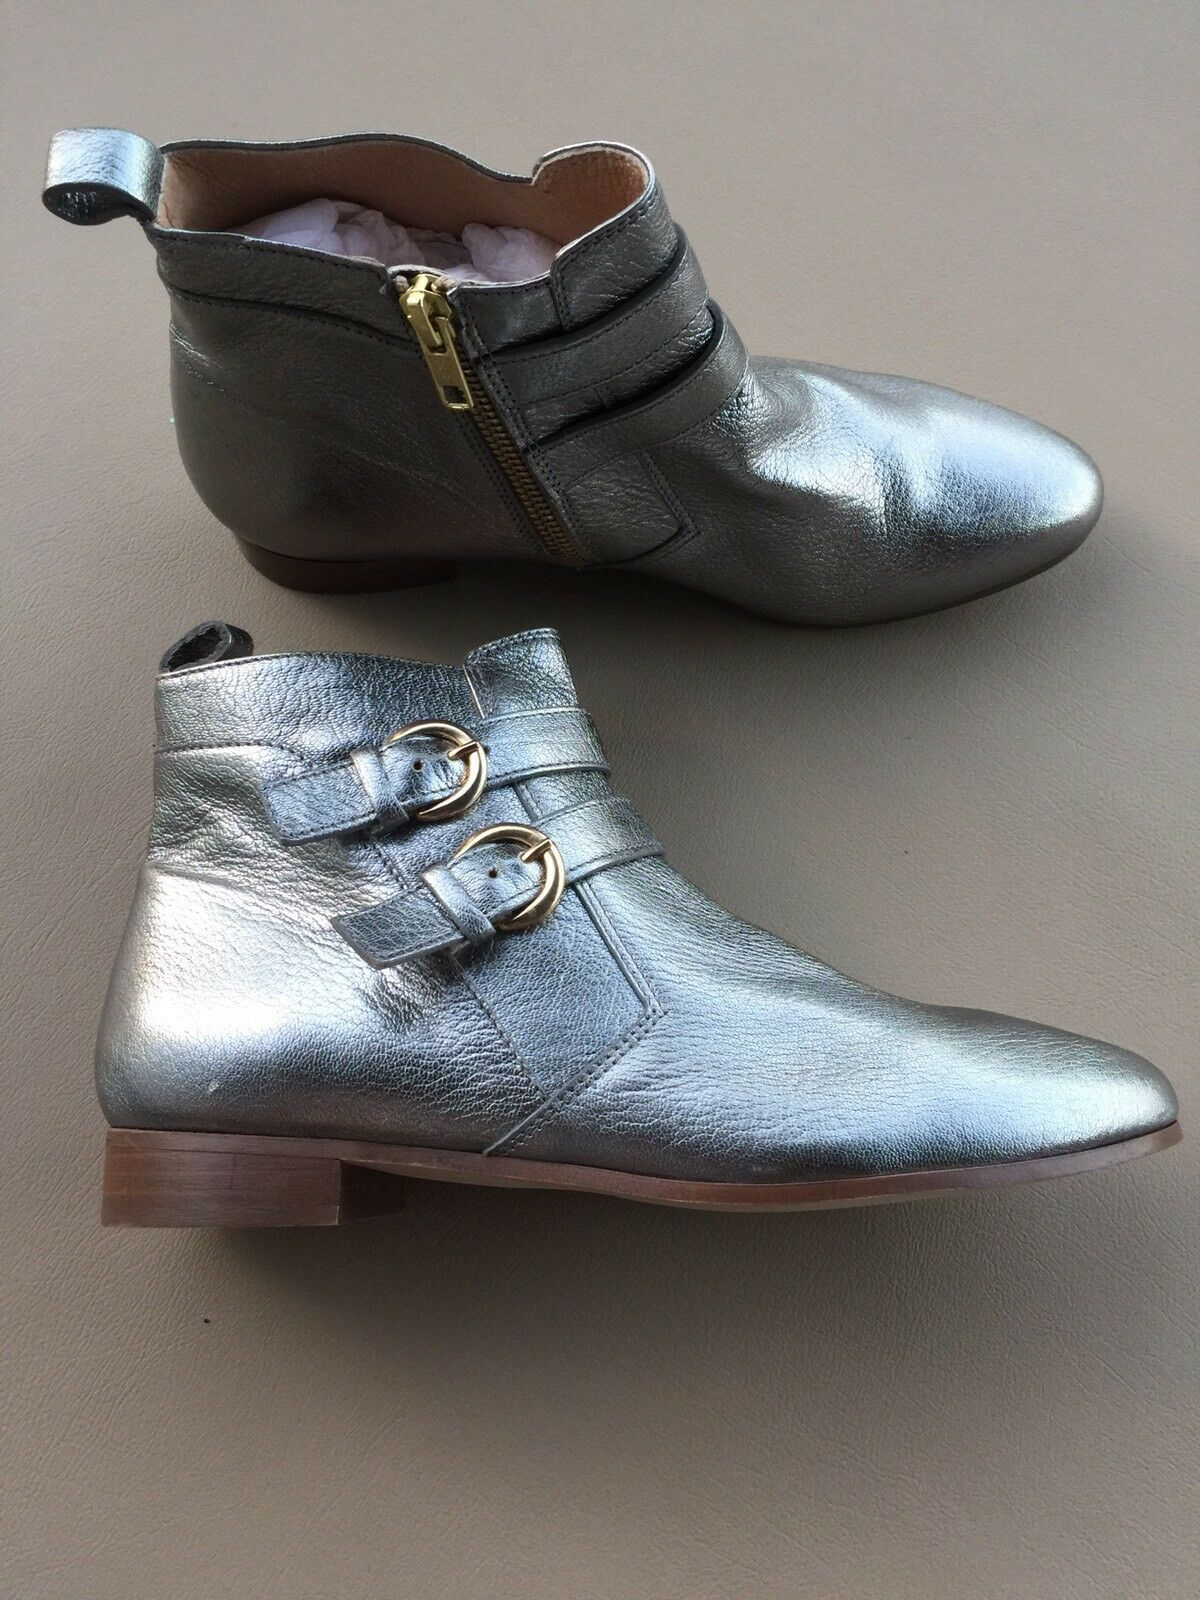 J Crew New Metallic Double Buckle Ashfield Boot Pewter Size 7